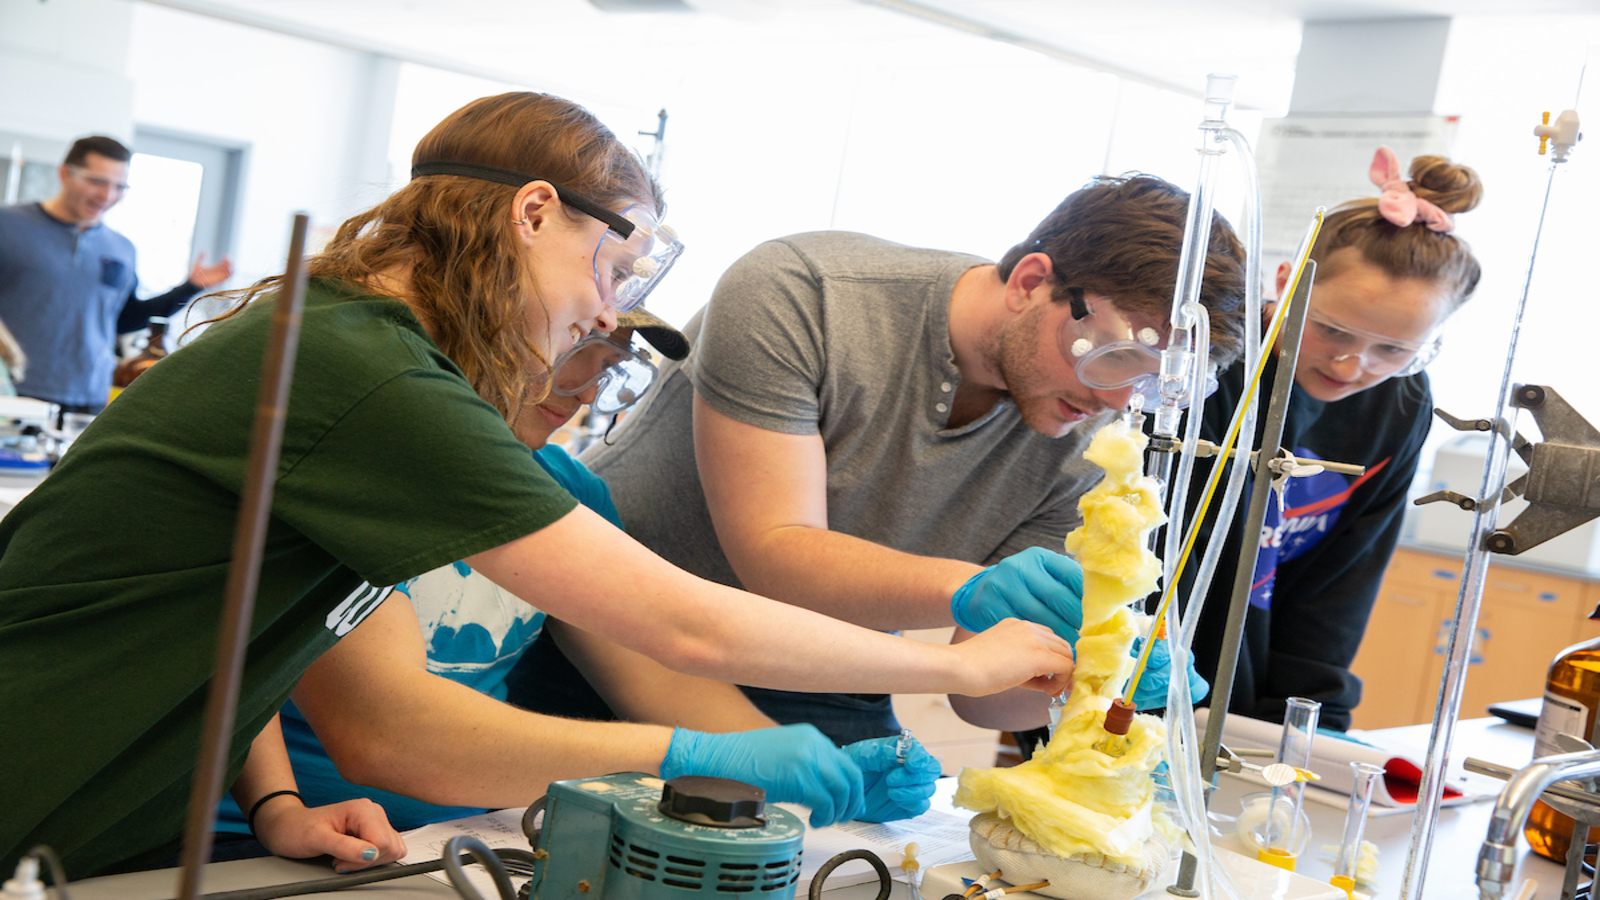 Fredonia students work together on an experiment in a lab